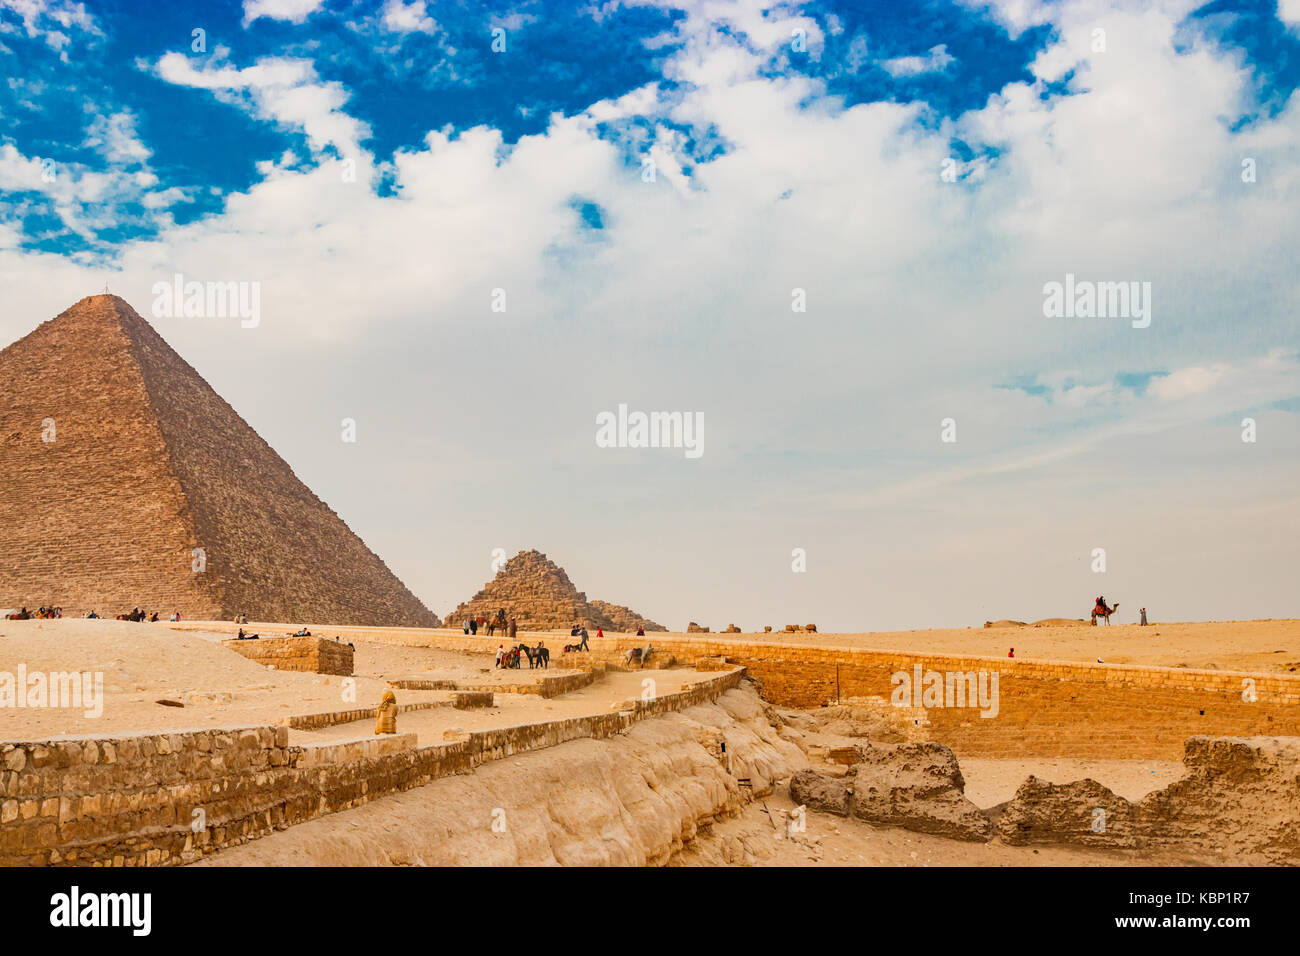 The ancient pyramid in Cairo, Egypt Stock Photo